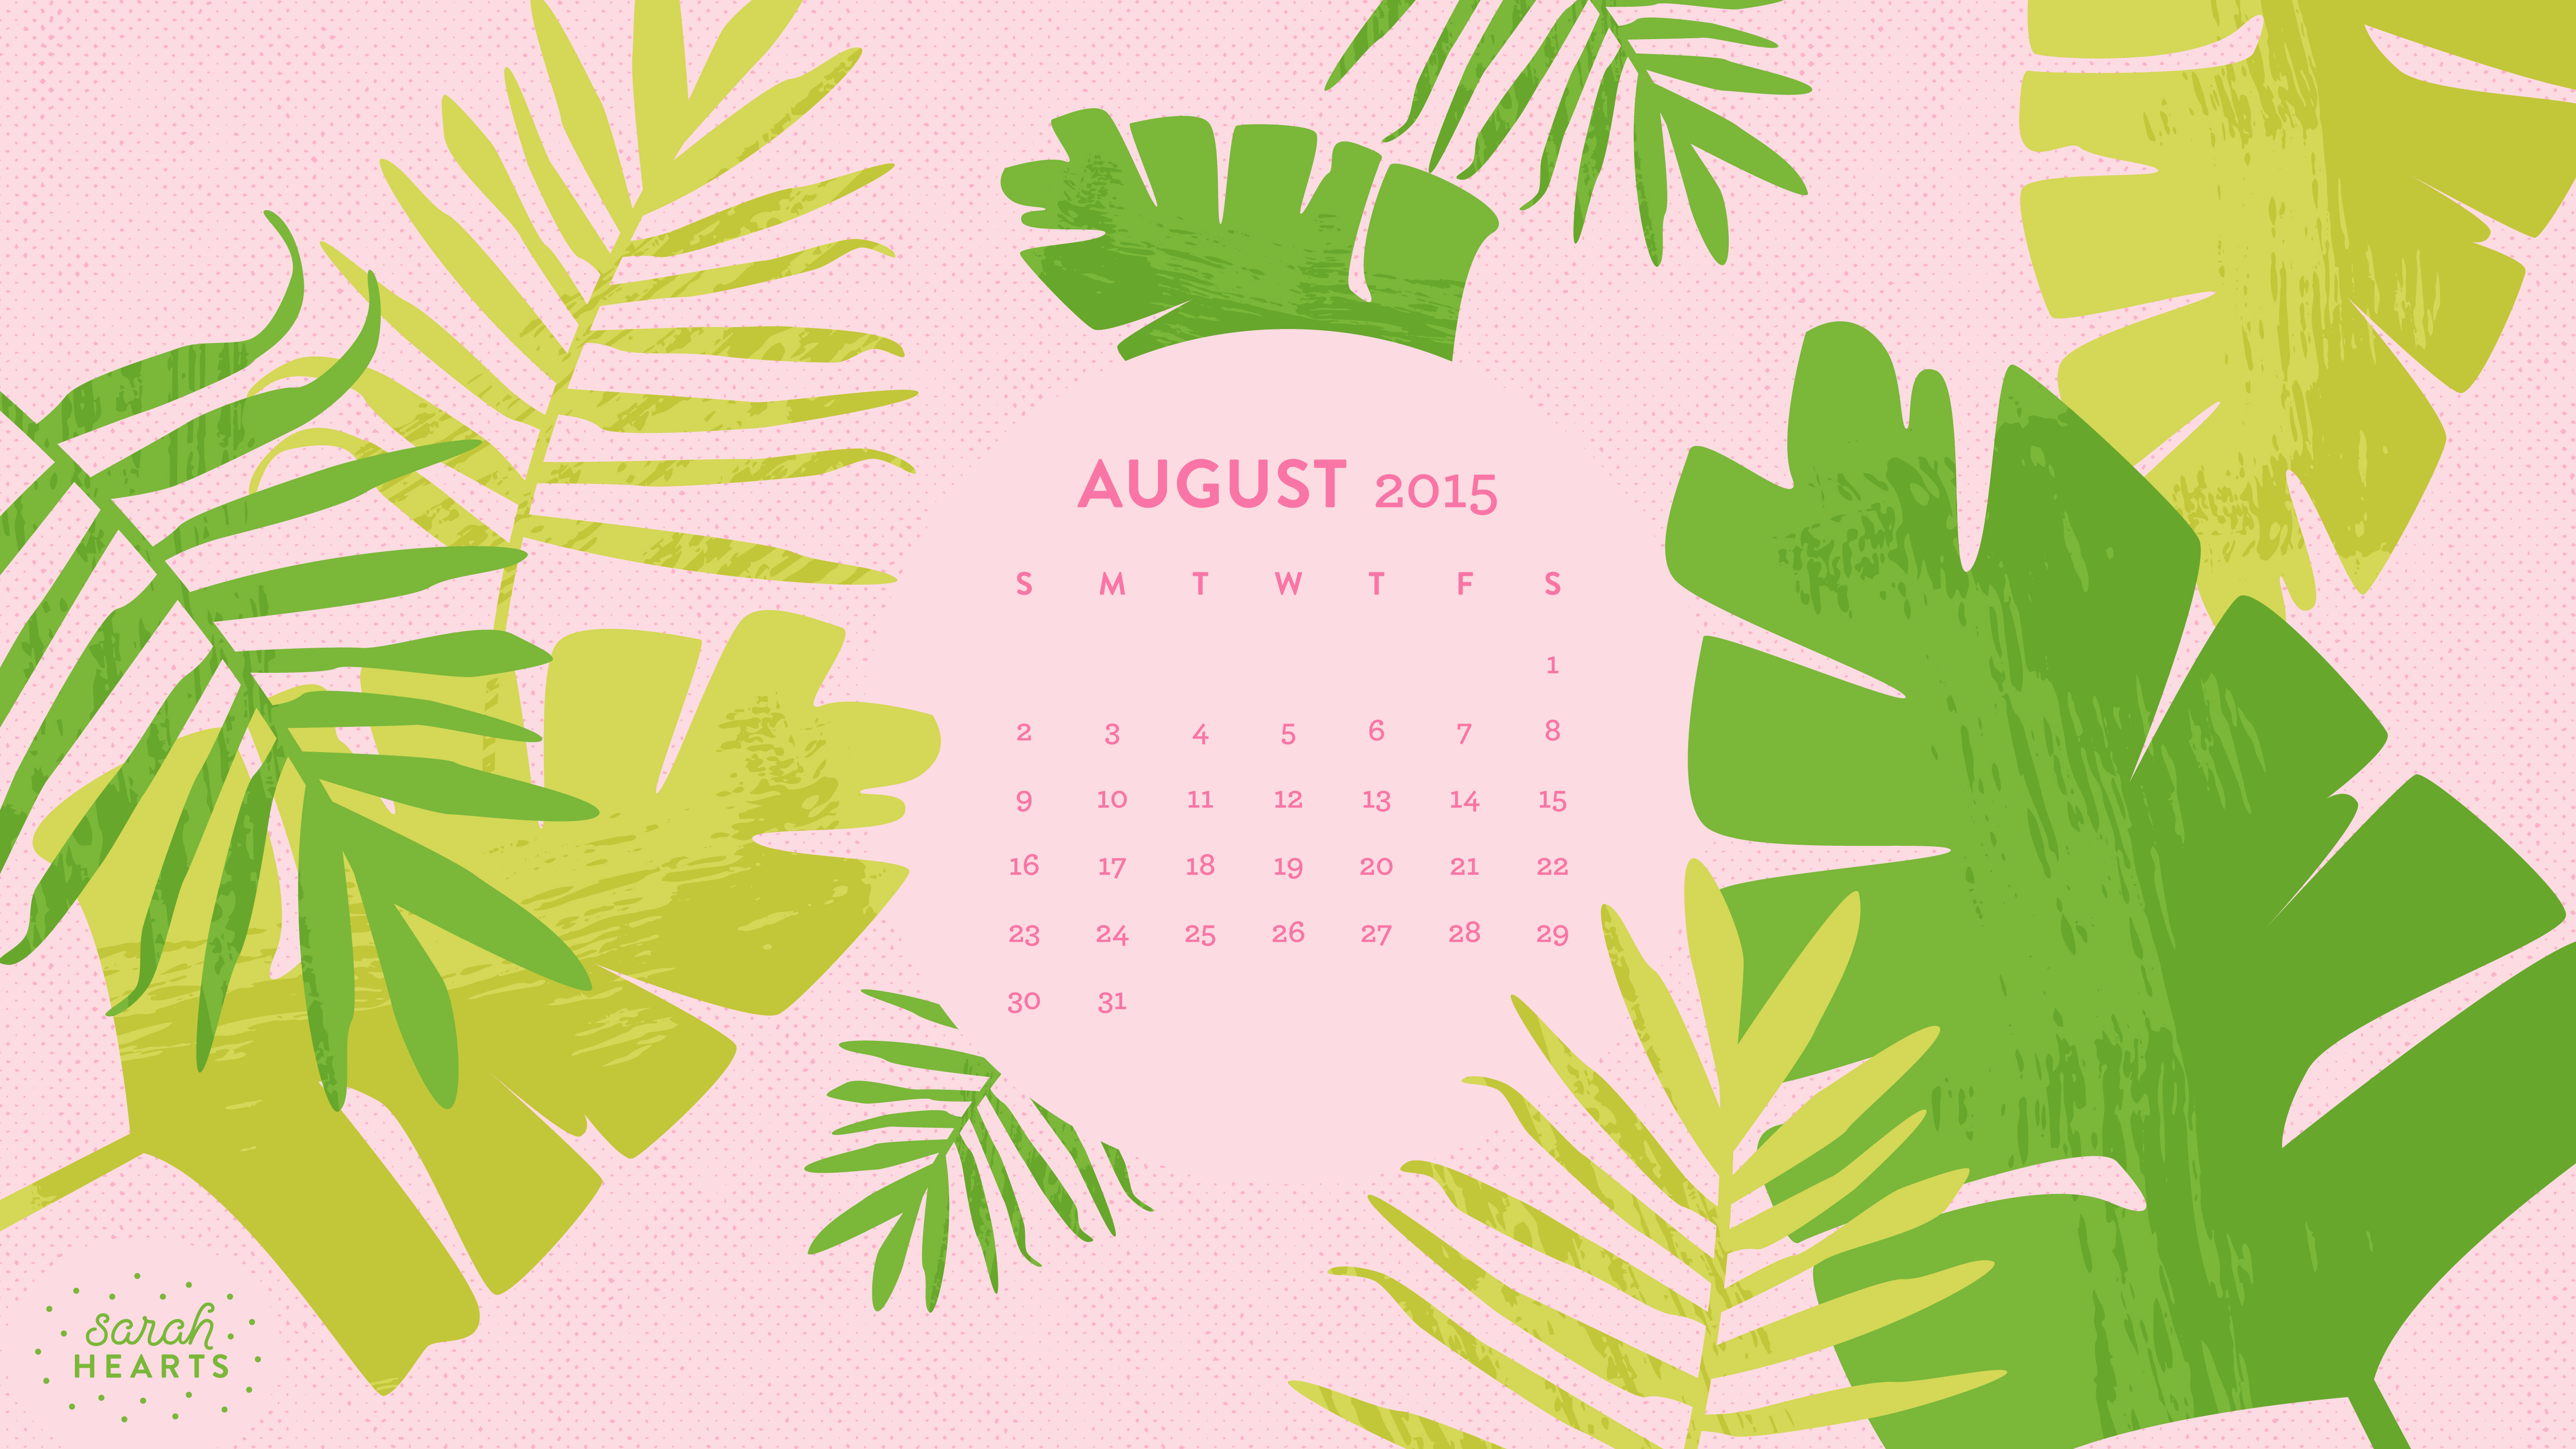 August 2015 Calendar Wallpaper   Sarah Hearts 5333x3000